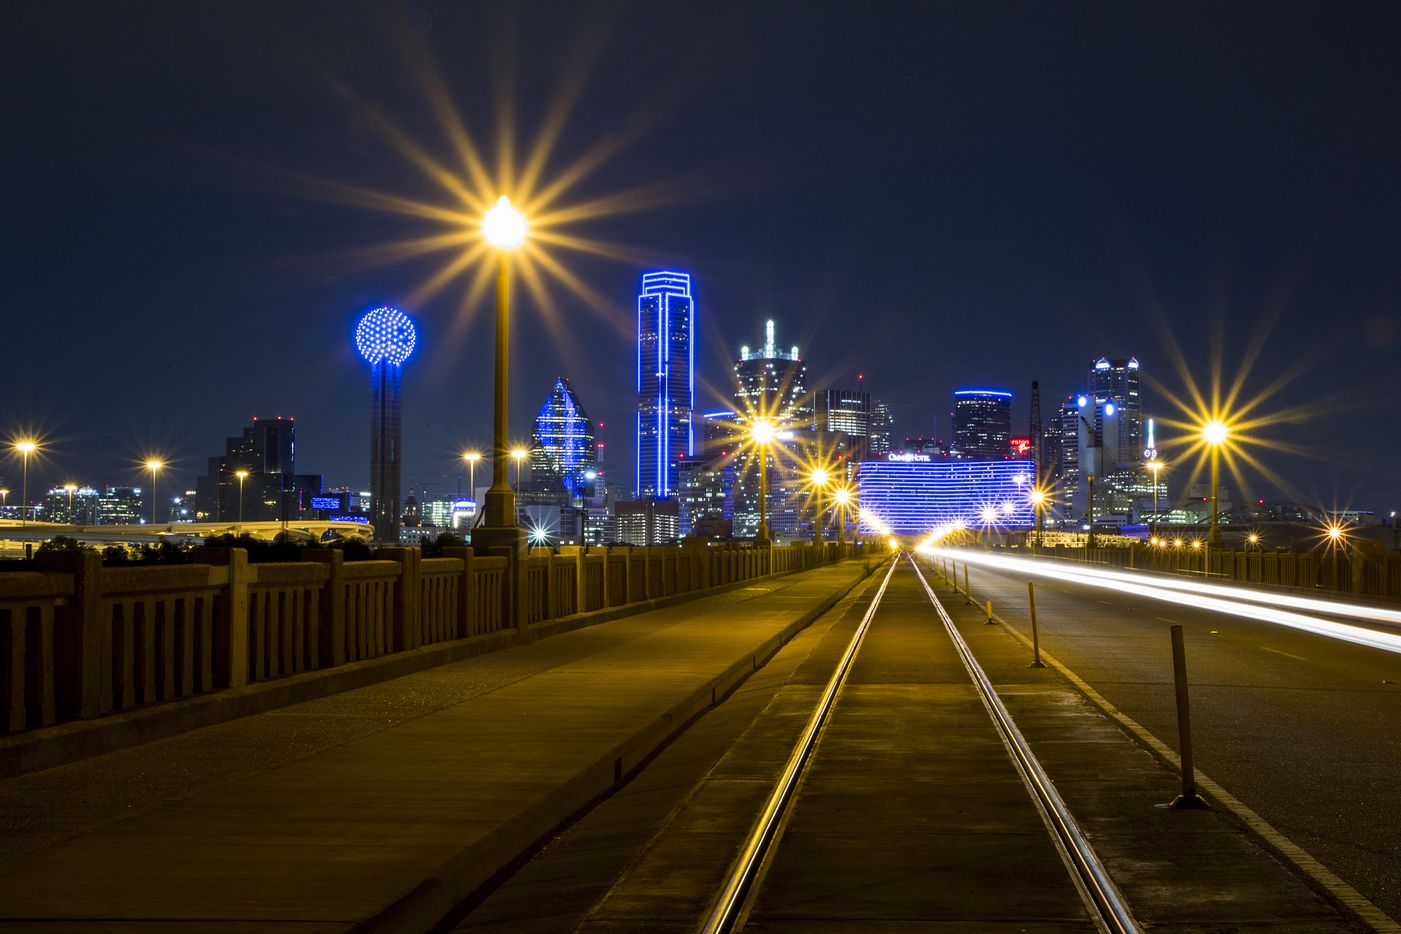 The downtown Dallas skyline lights up in blue in recognition of National Police Week as seen from the Houston Steet Viaduct on Monday, May 15, 2017. (Smiley N. Pool/The Dallas Morning News)